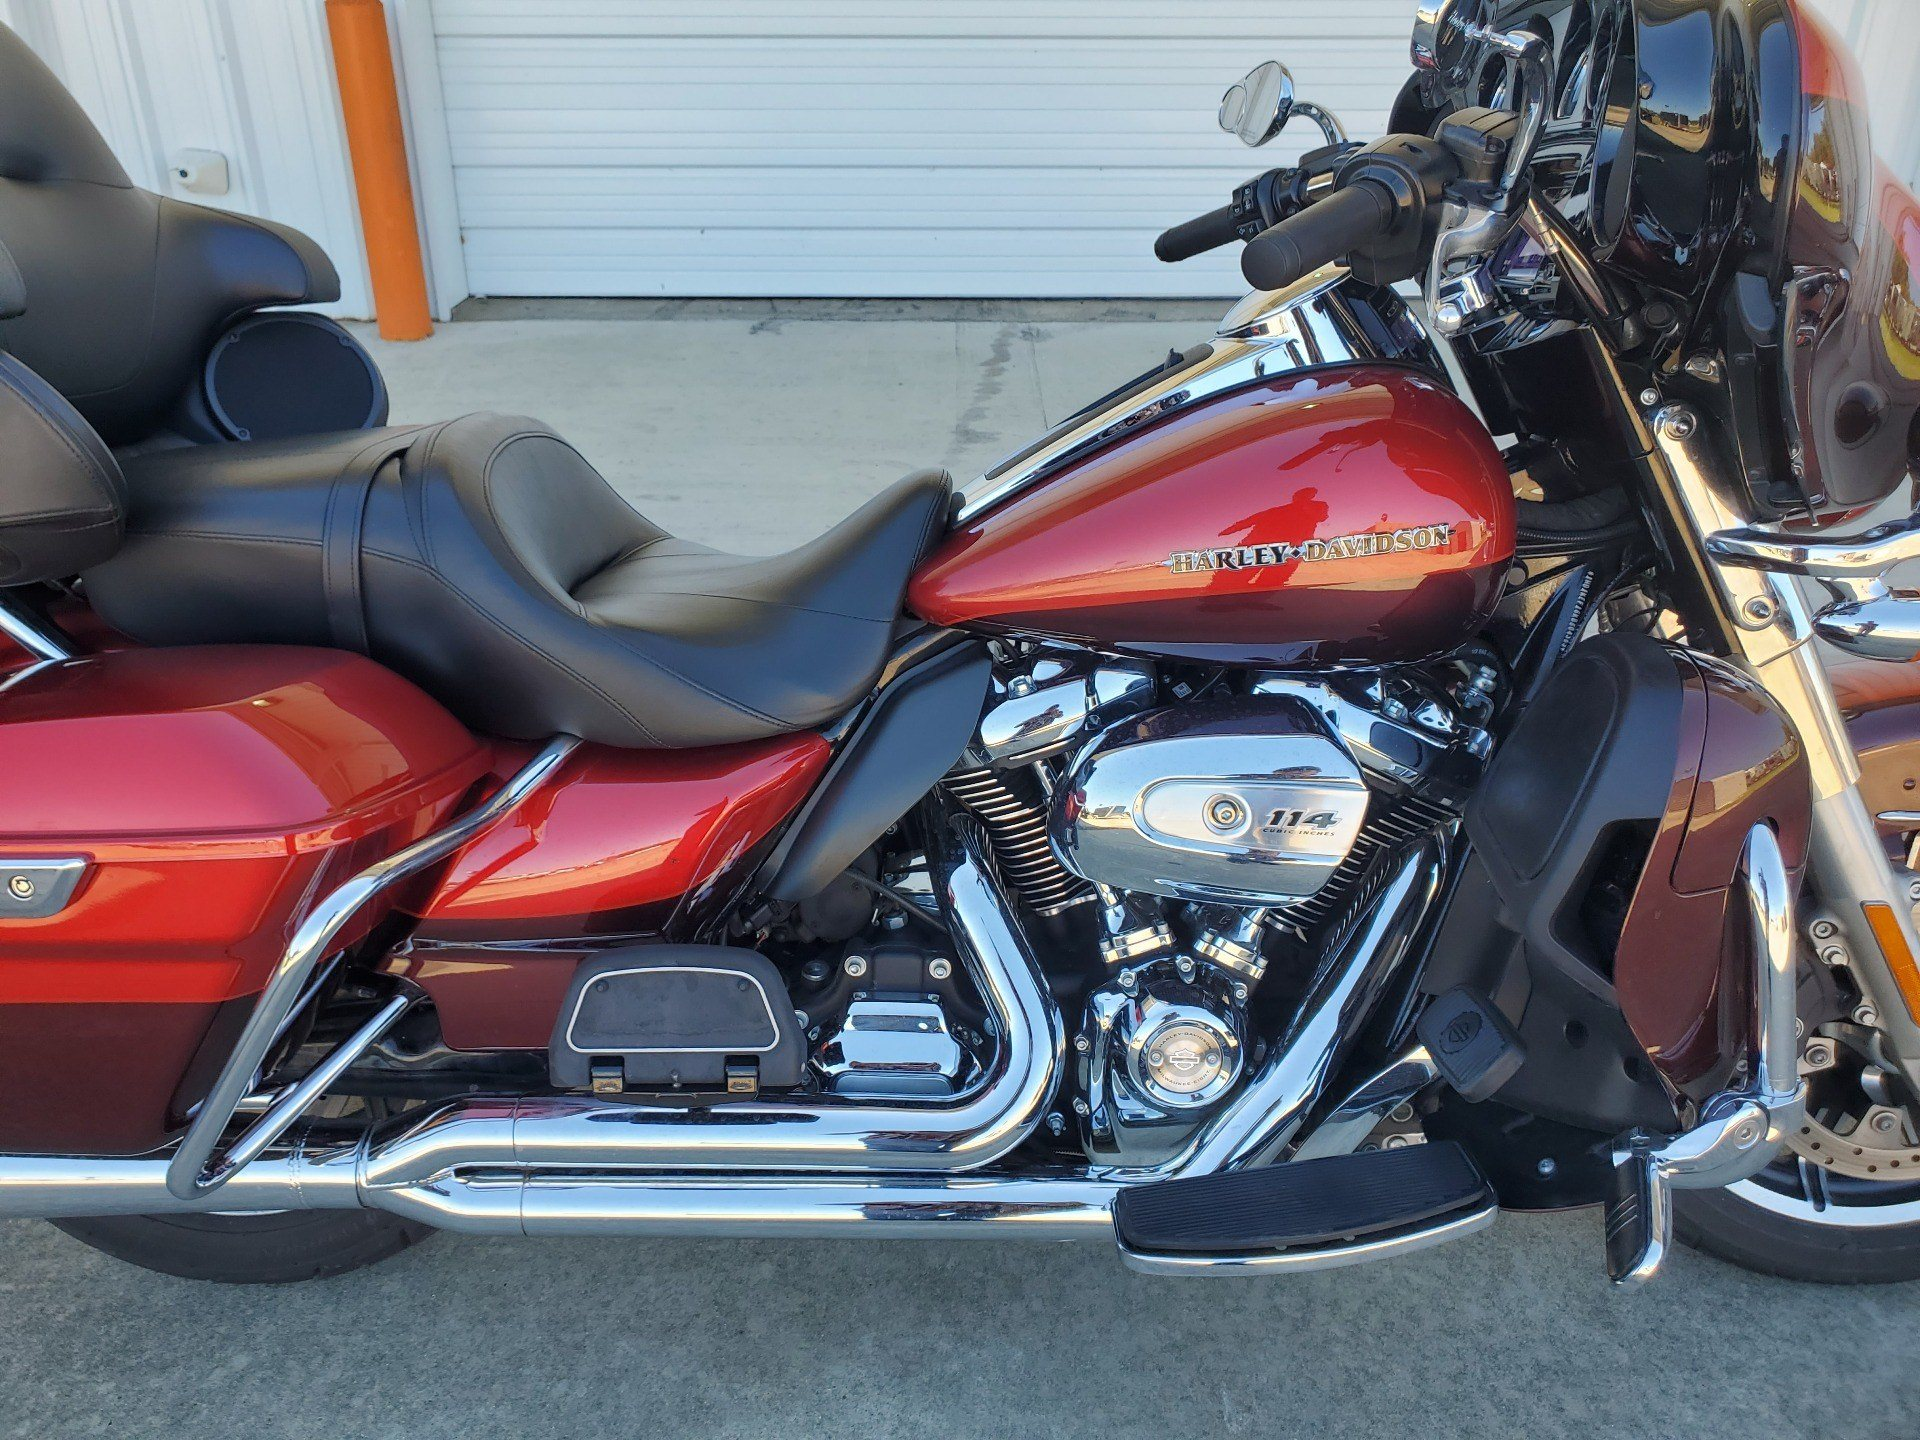 2019 Harley-Davidson Ultra Limited in Monroe, Louisiana - Photo 4